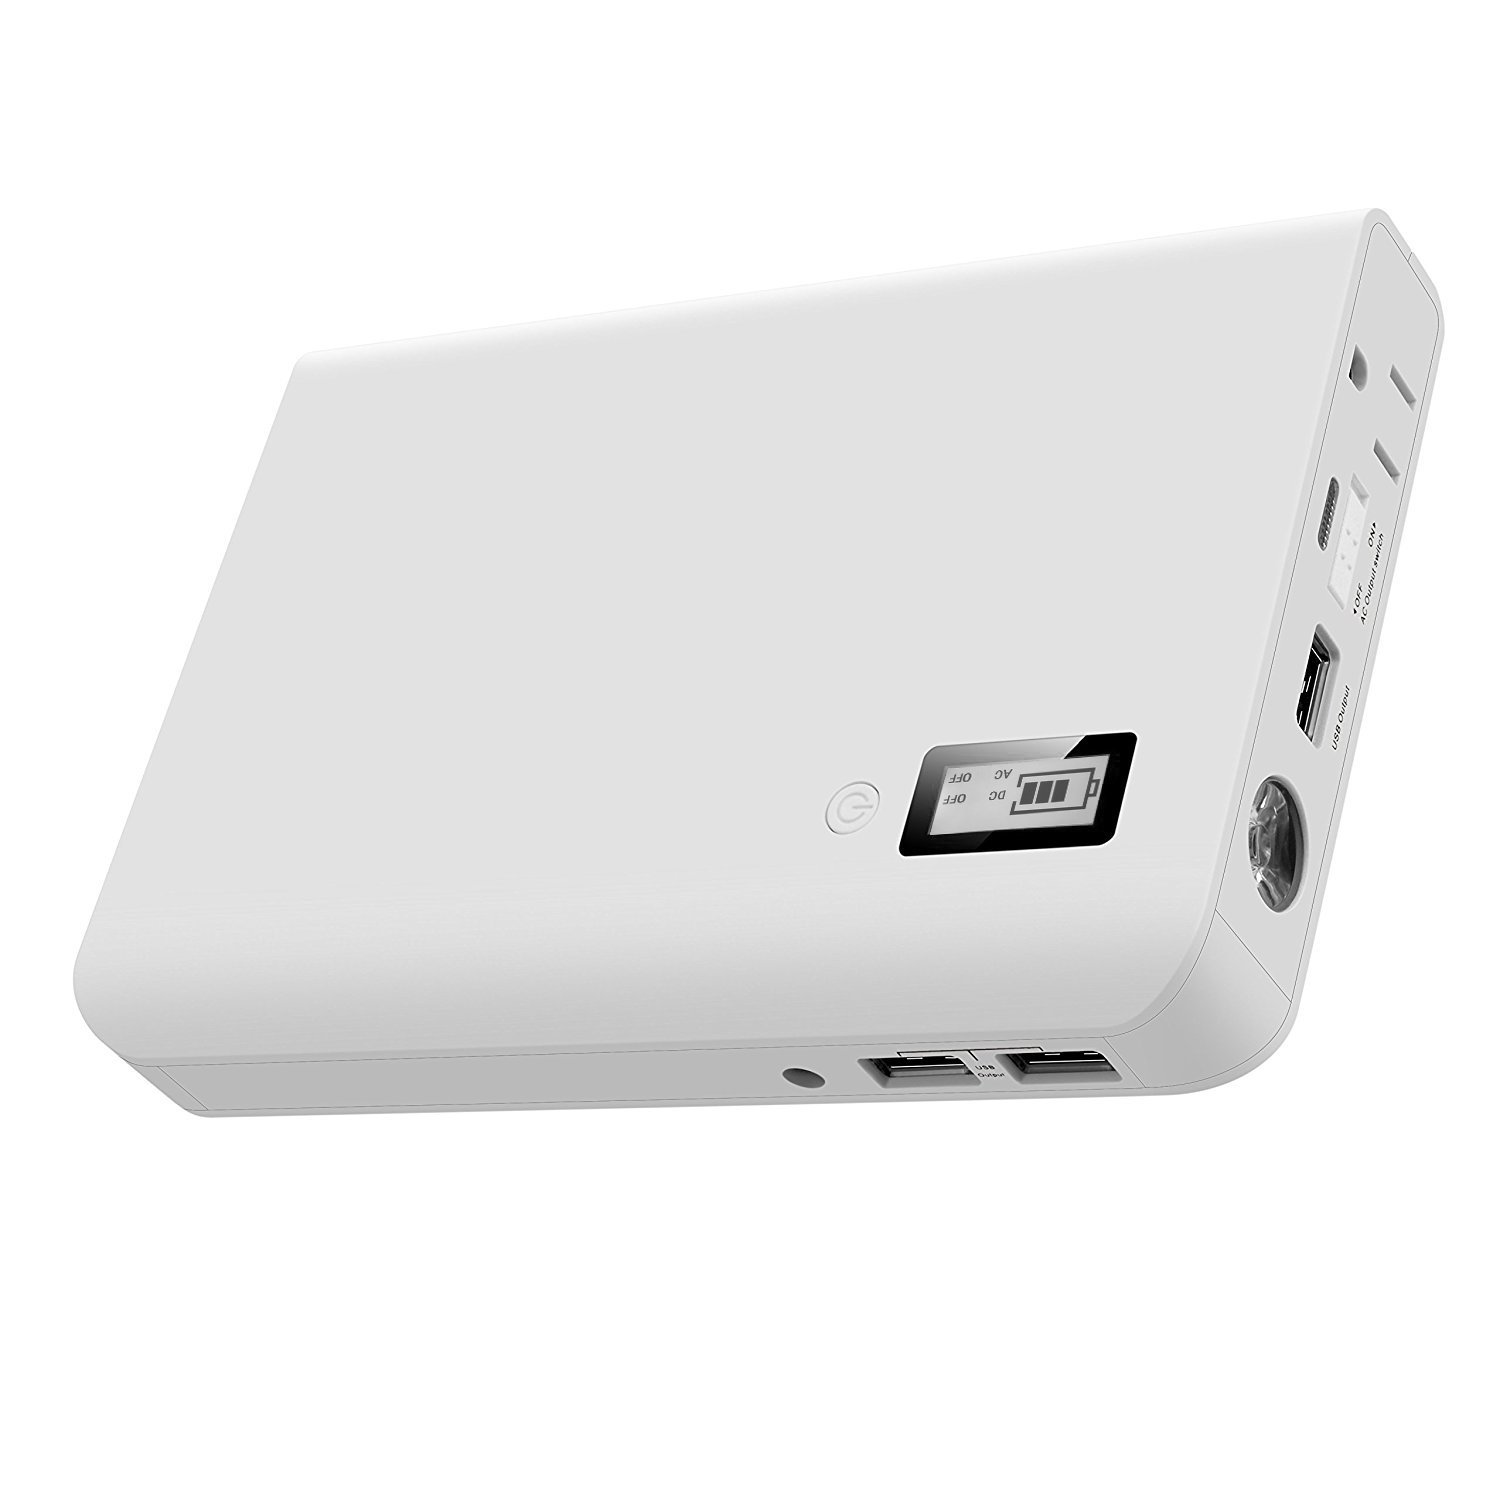 AIVANT AC Outlet Portable Charger, Laptop Power Bank 24000mAh External Battery Packs for Smartphone Tablet and More